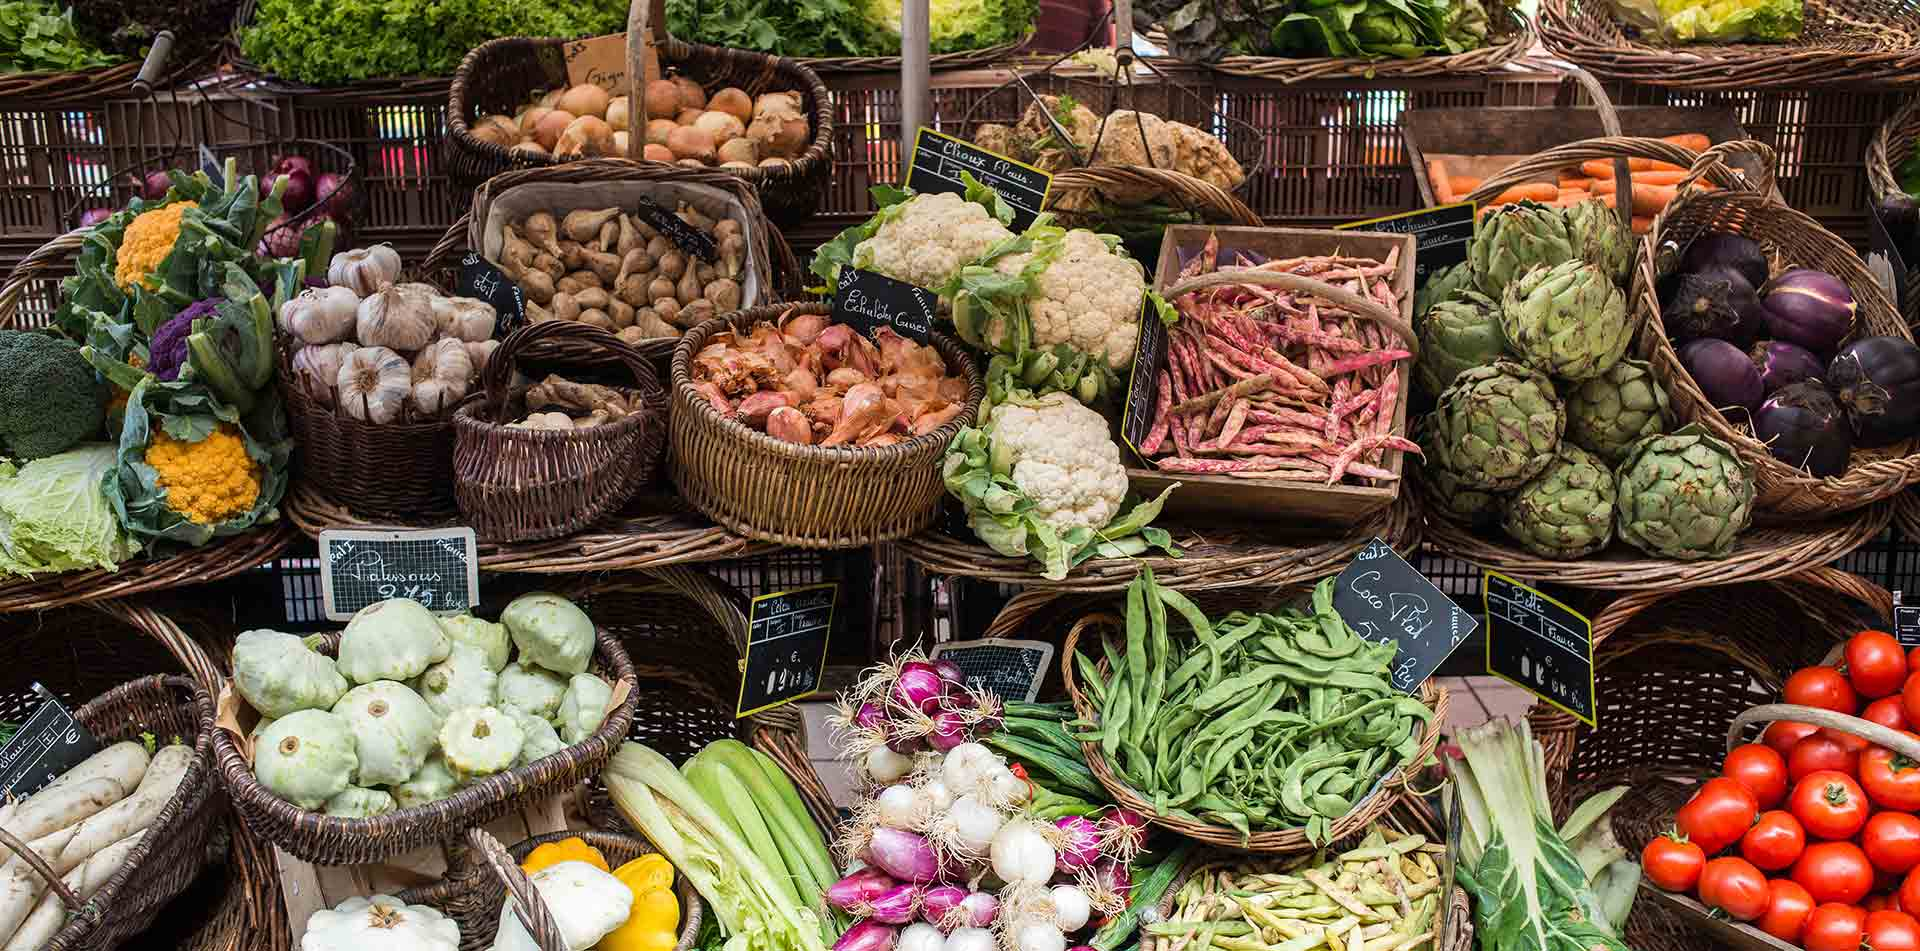 Europe France Dordogne fresh fruit and vegetable stand in local market - luxury vacation destinations